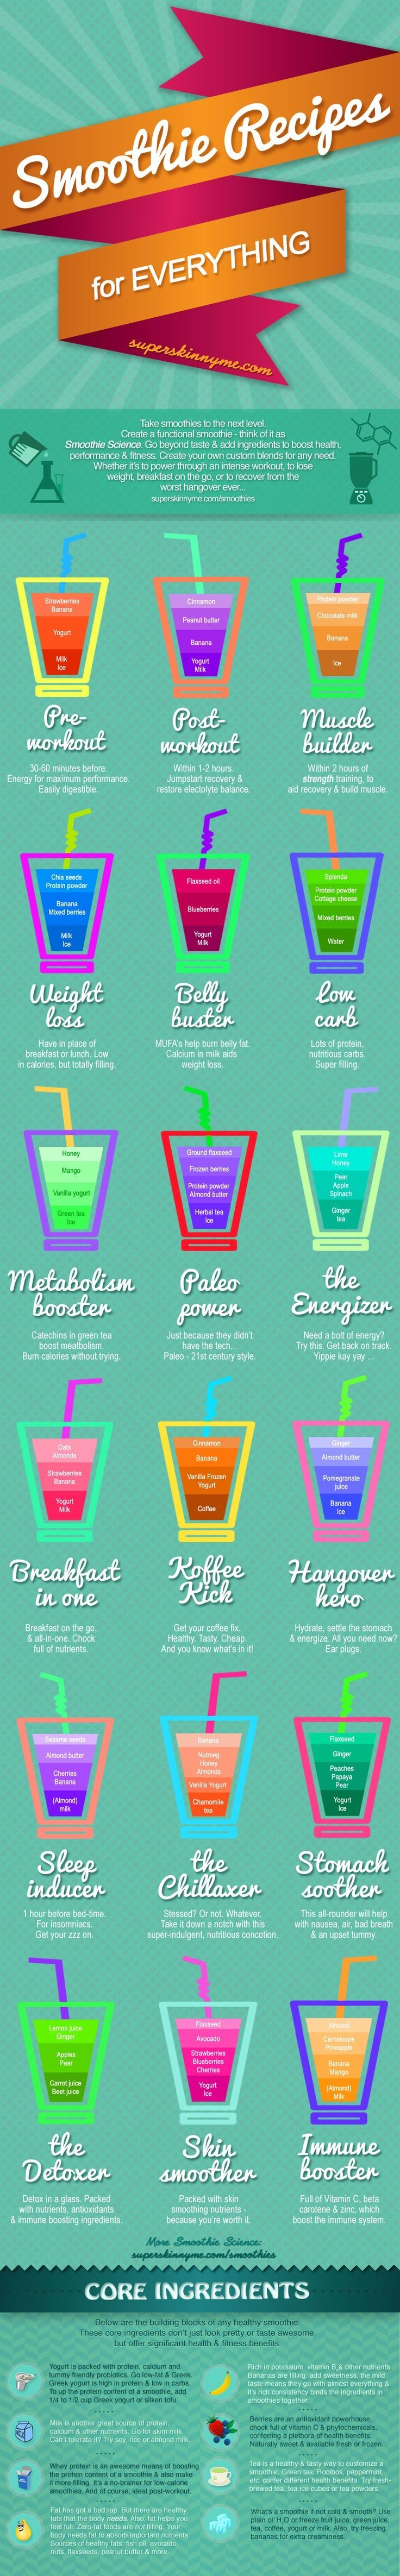 smoothies for almost everything